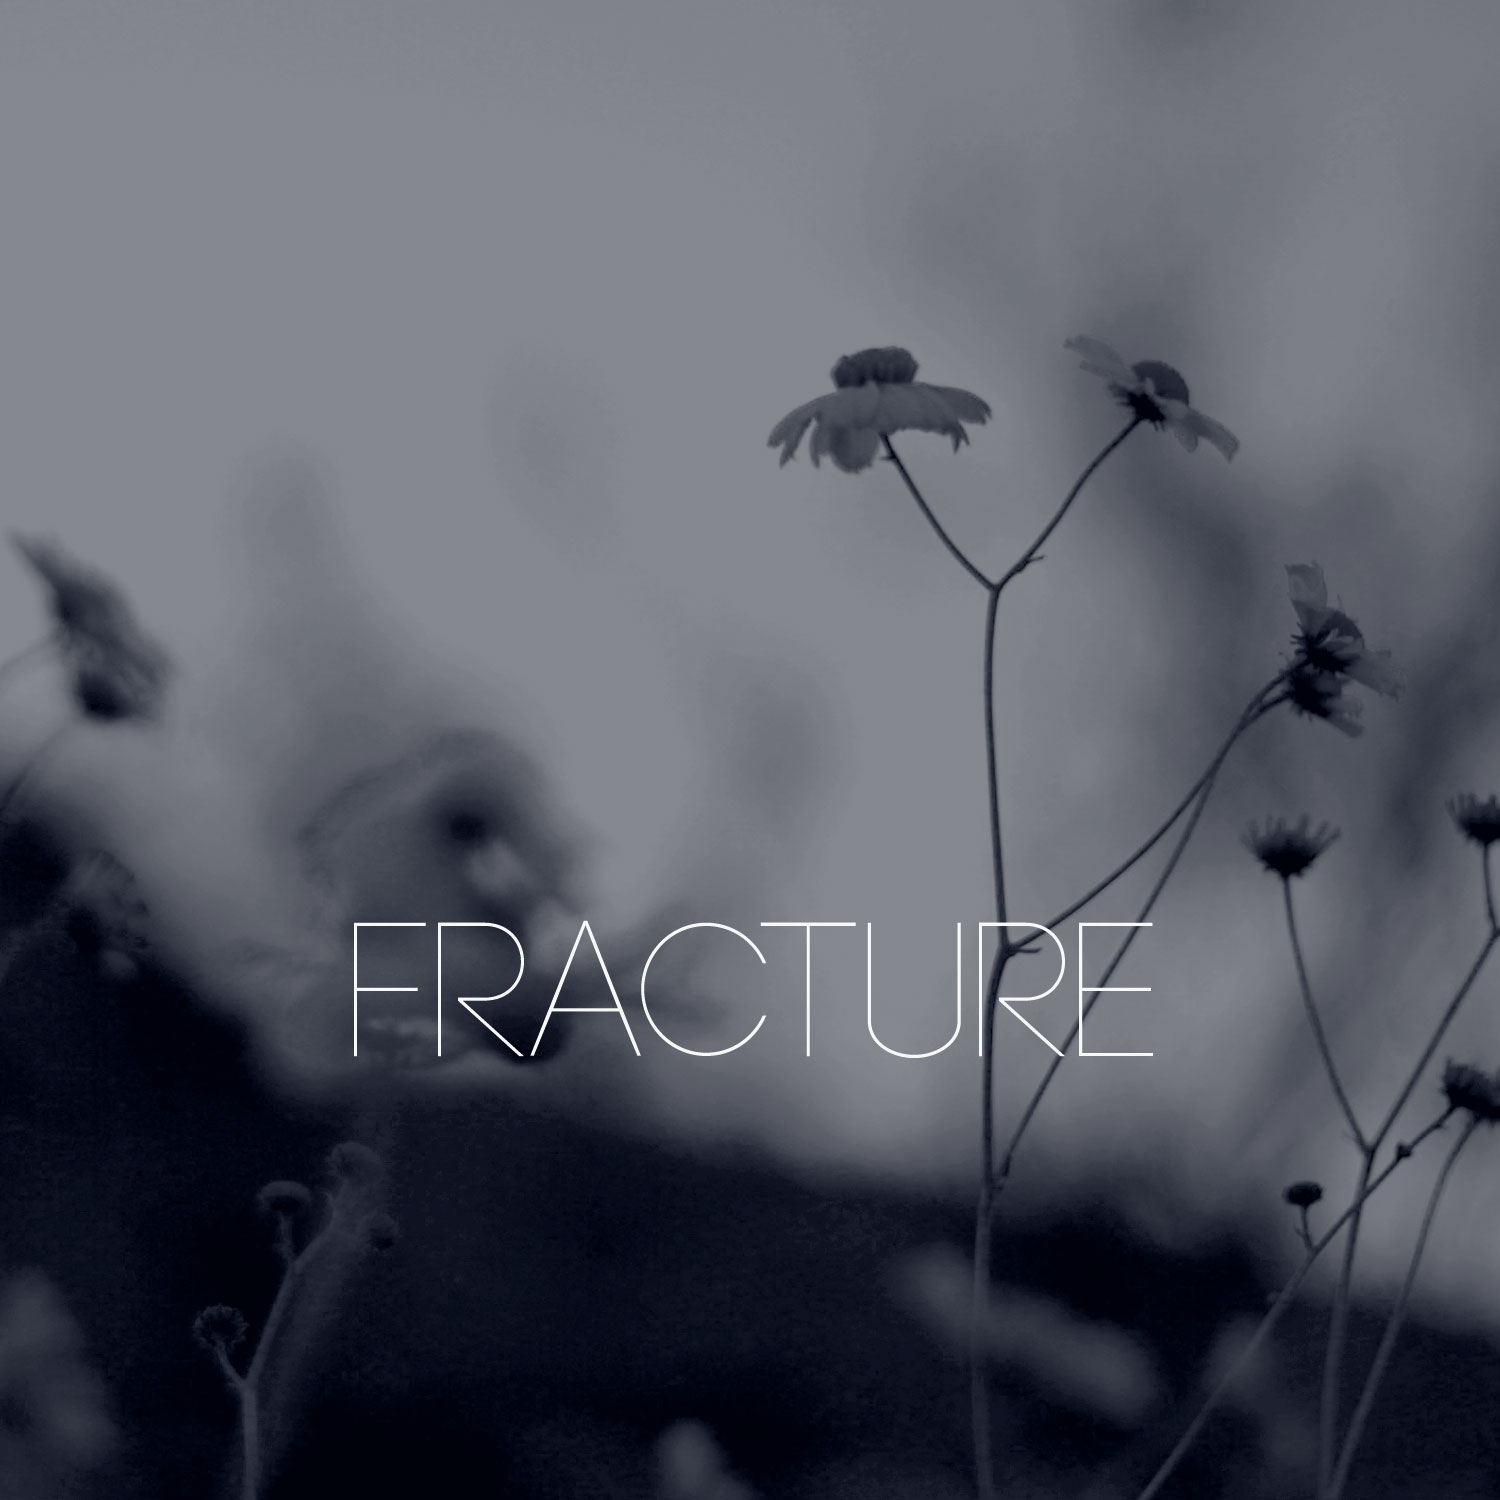 Row Boat and Apta - Fracture - Cover Photography by Daniel Tuttle